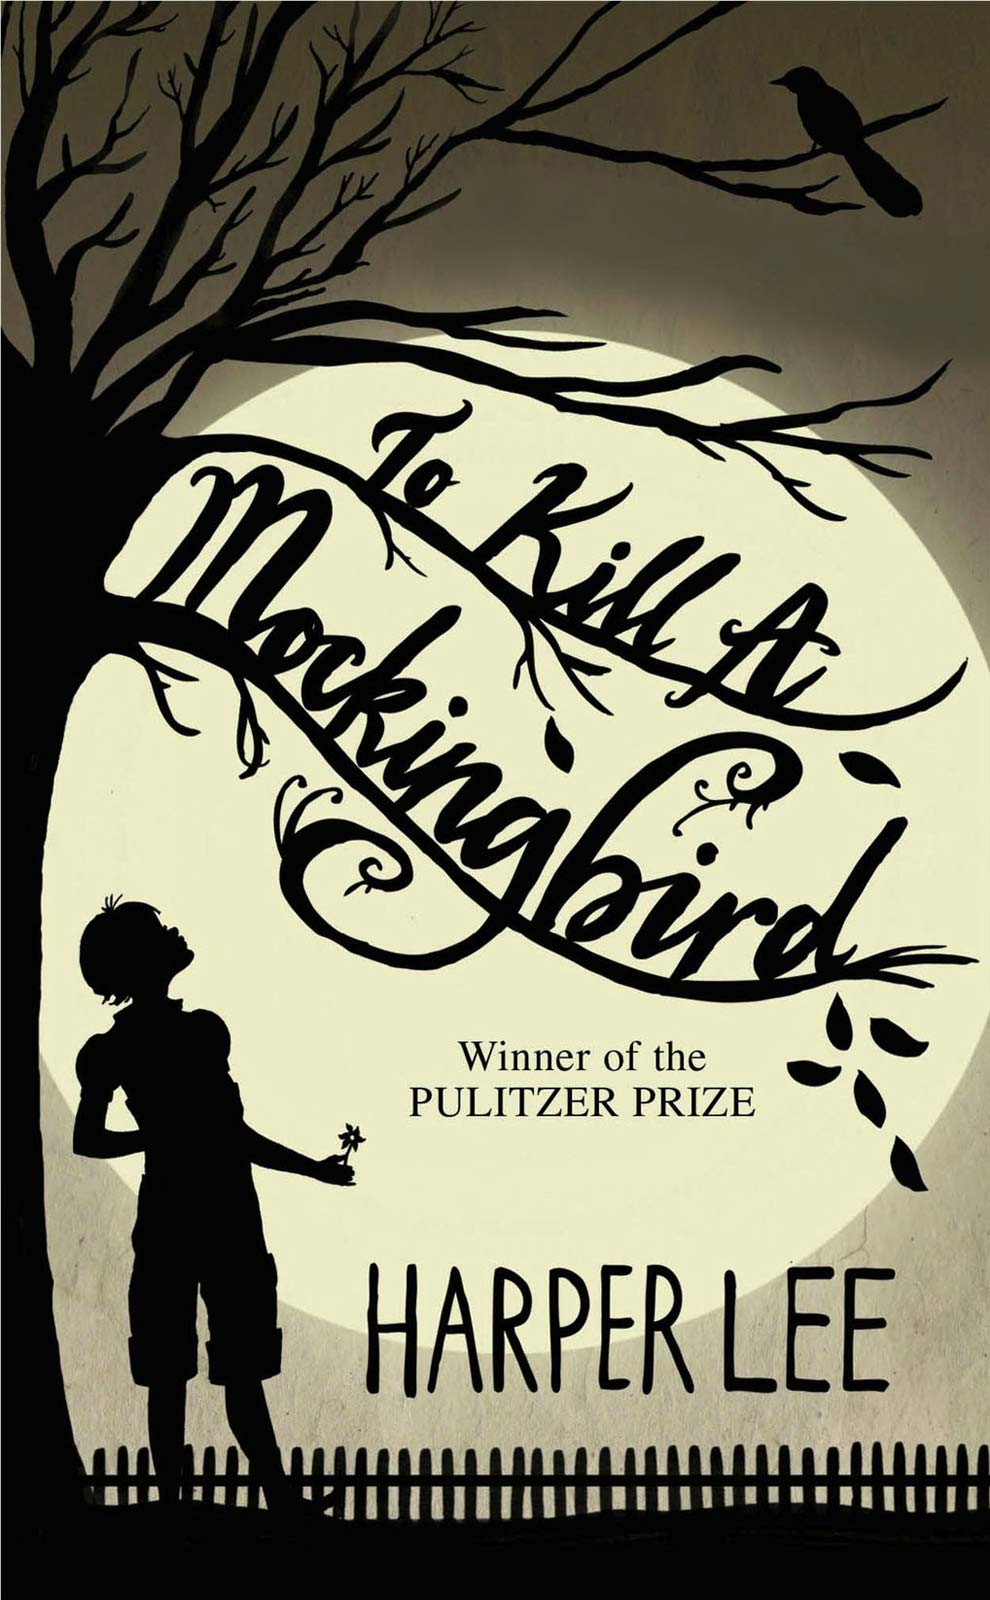 to kill a mockingbird Opens in new window